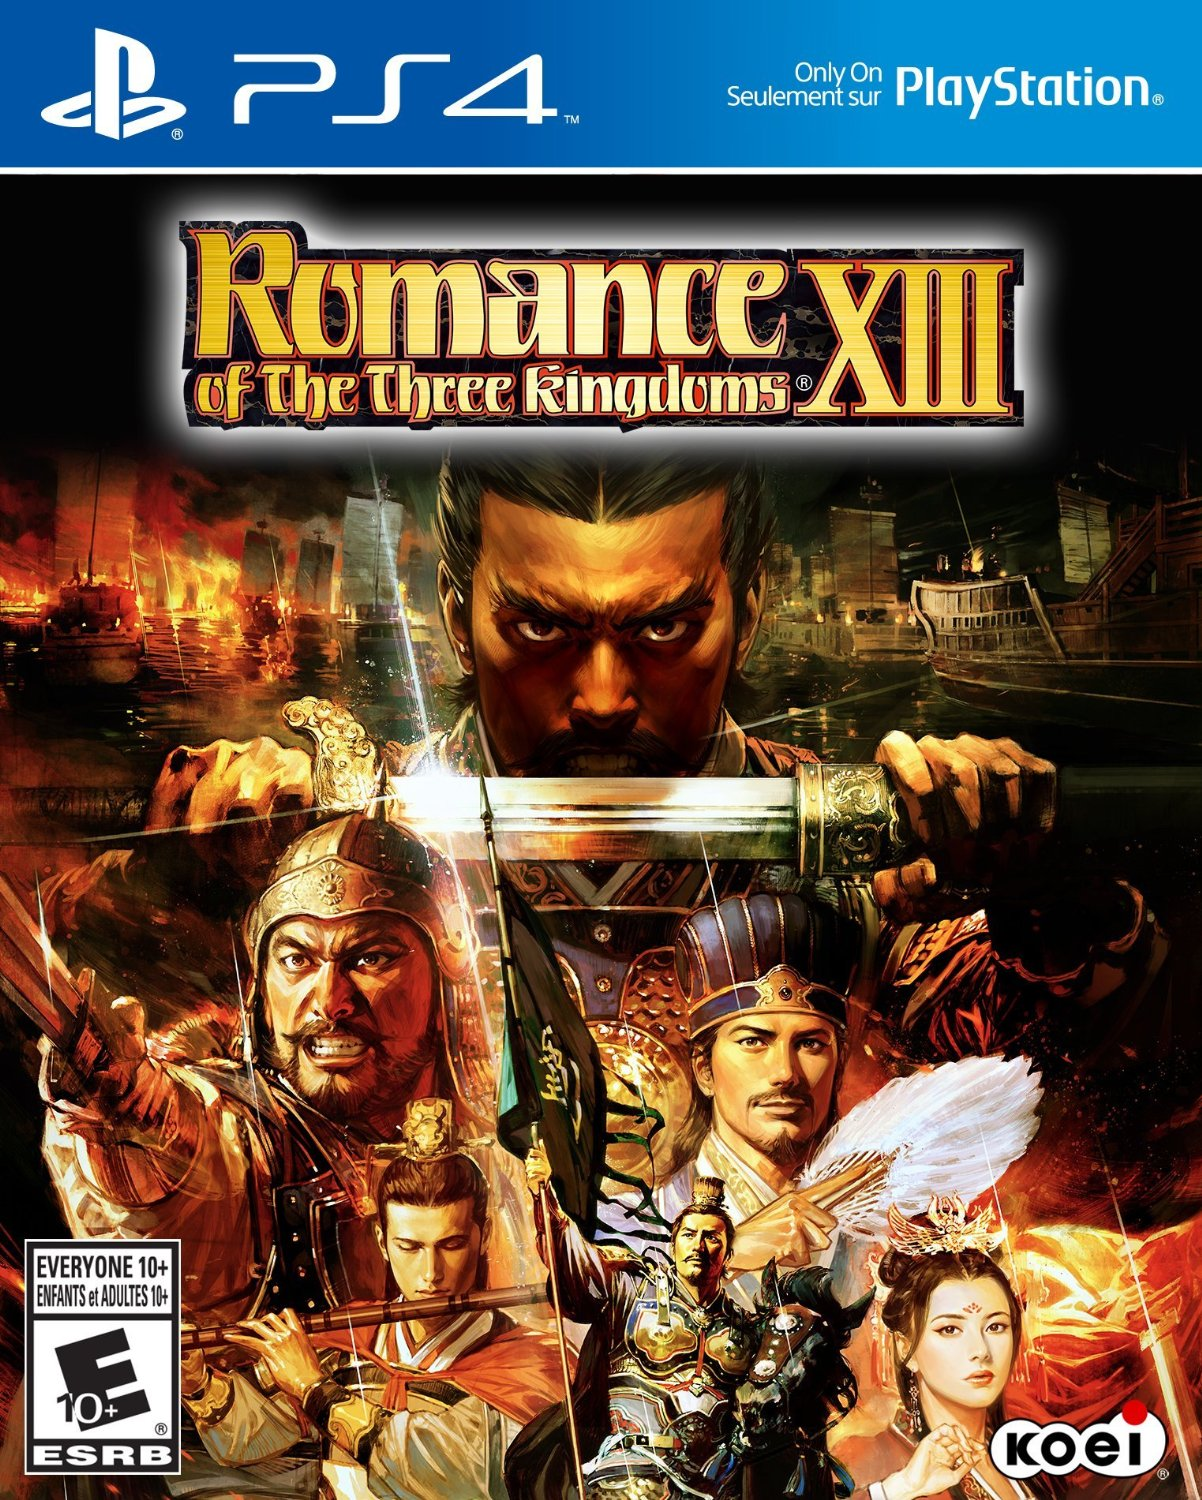 romance-of-the-three-kingdoms-xiii-box-art